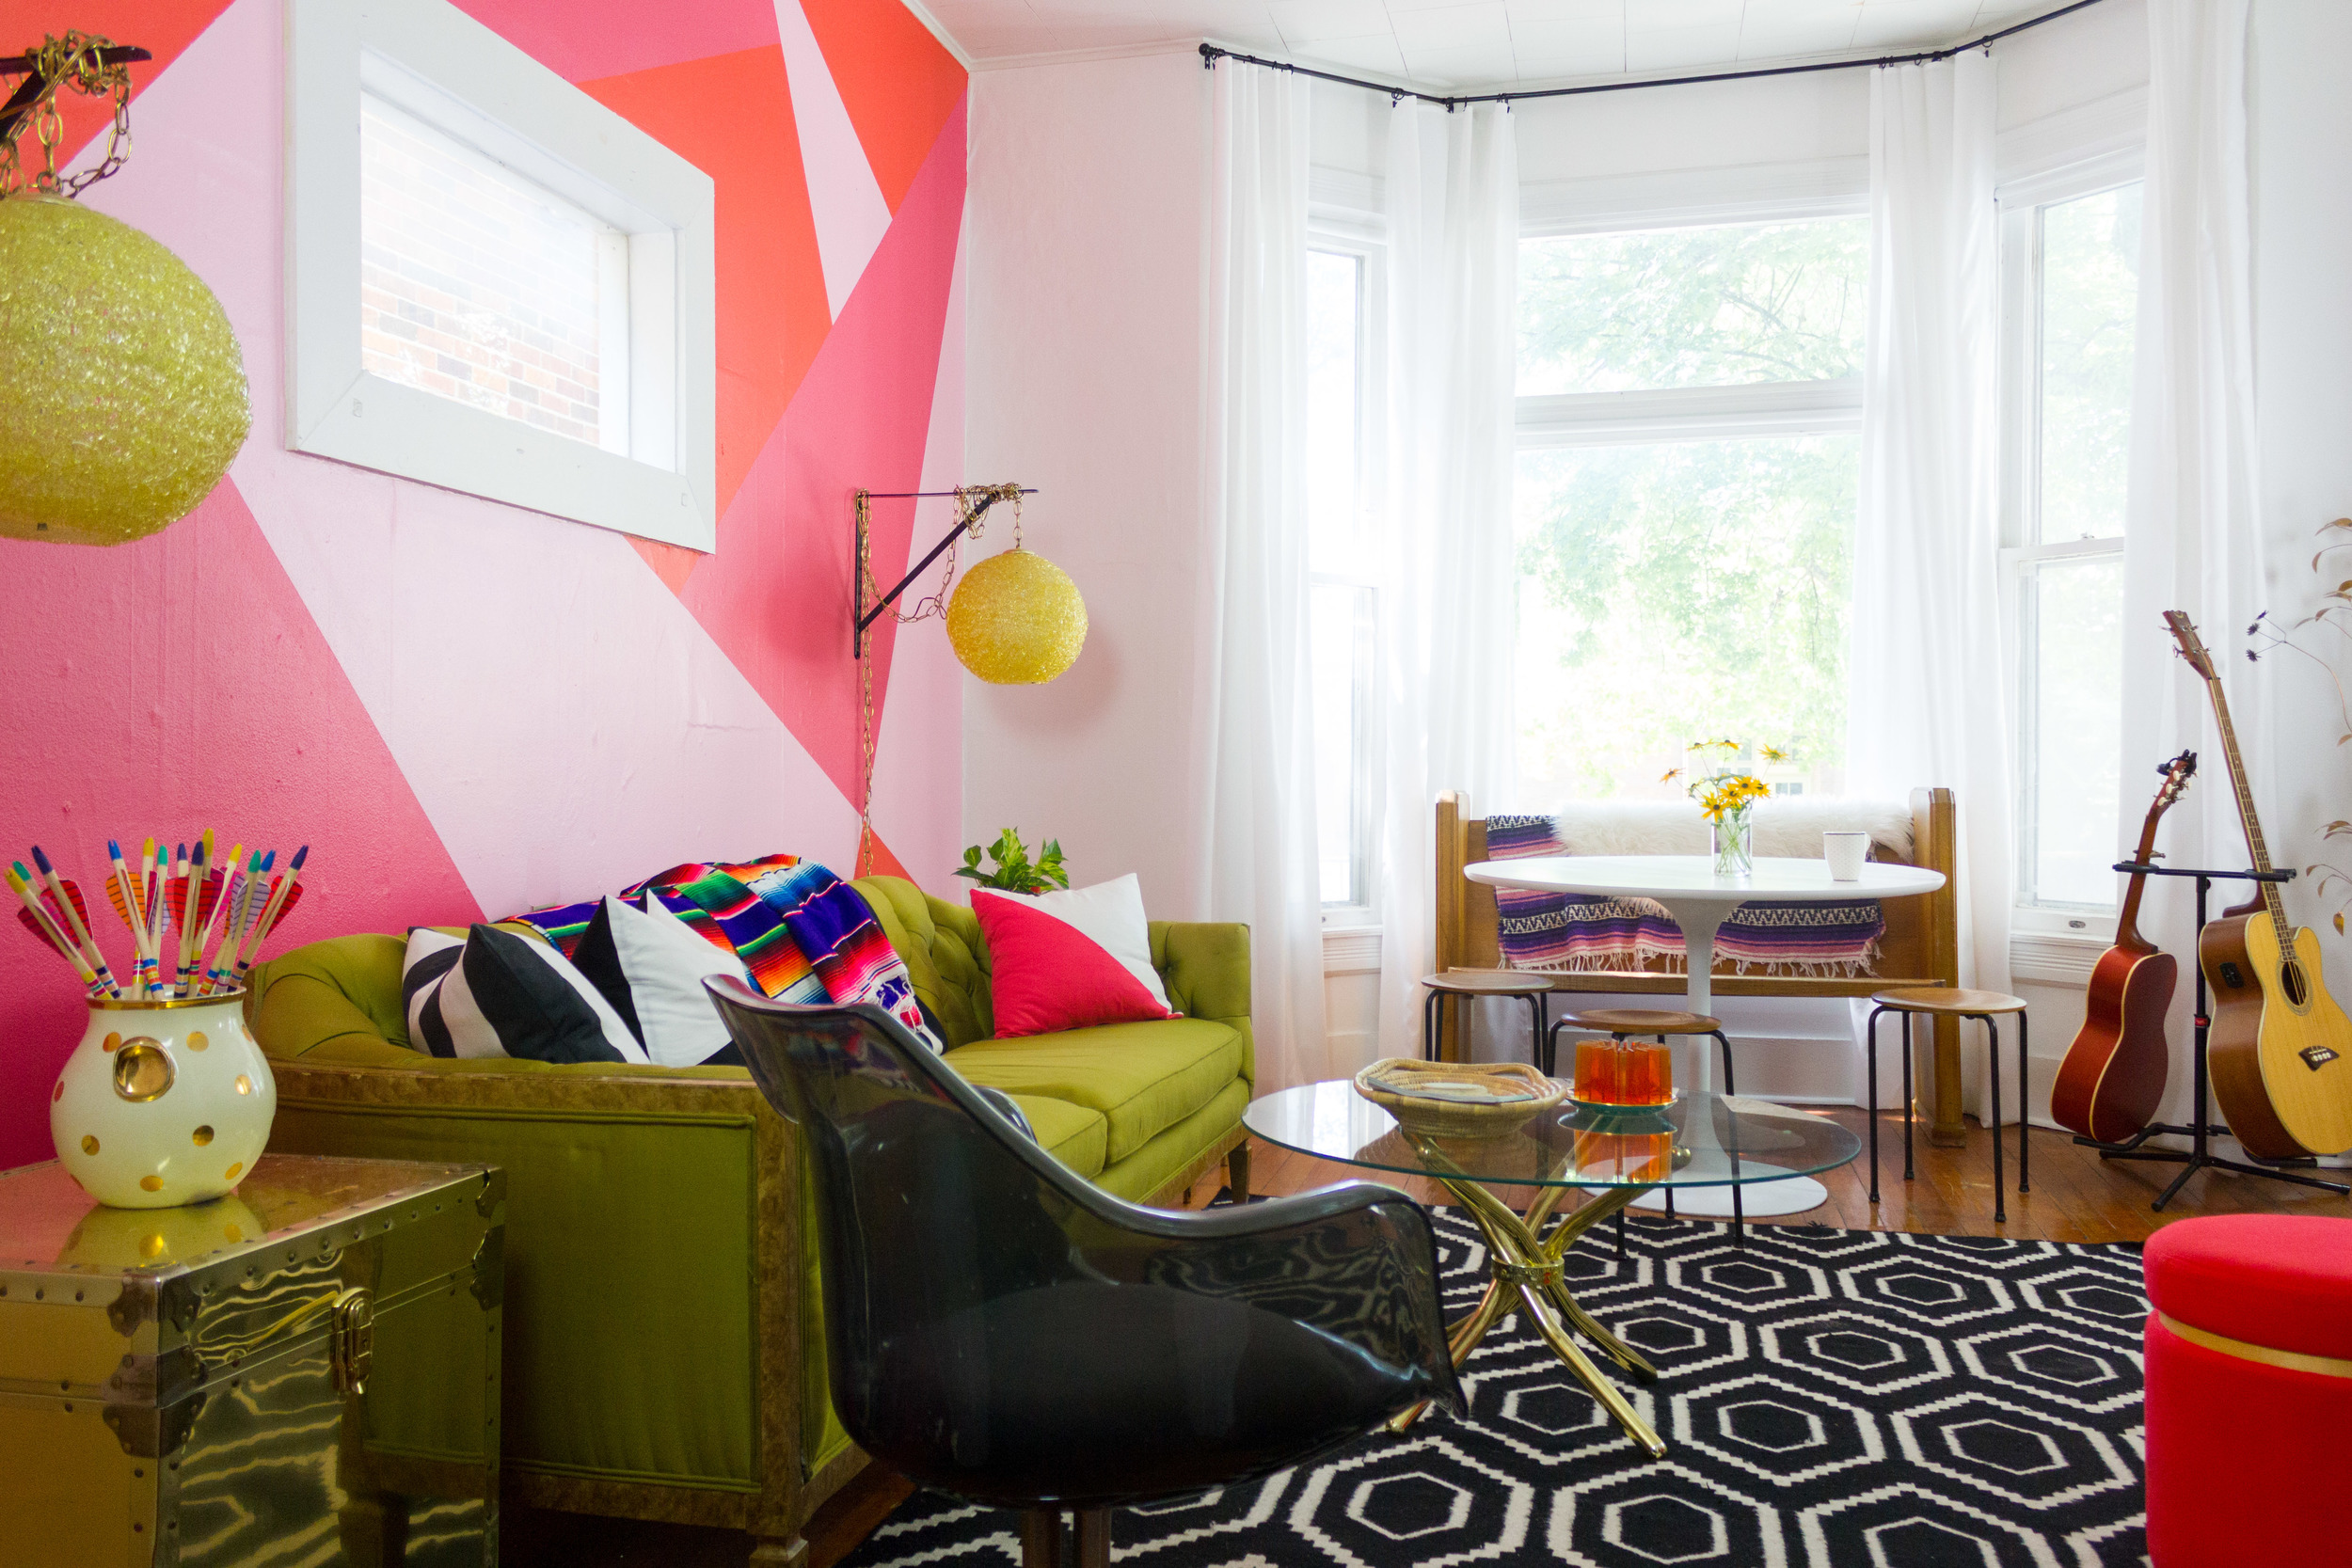 M Pettipoole – Bohemian Living Room with Pink Accent Wall